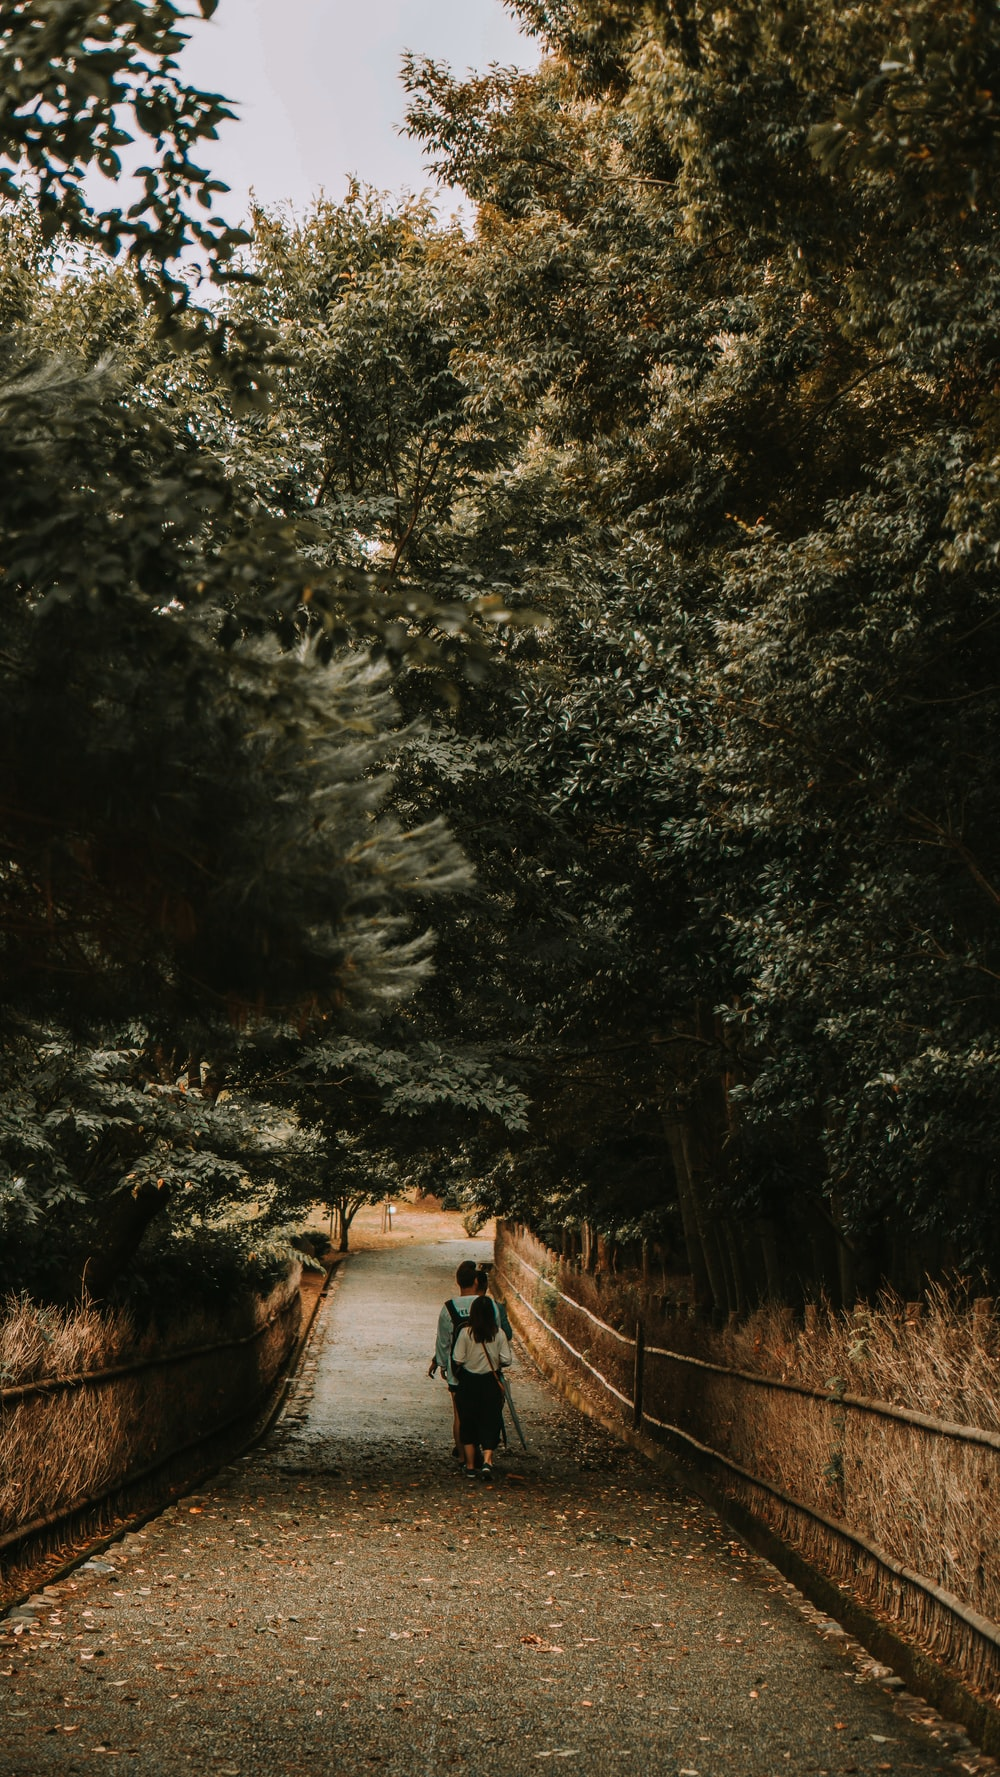 person in black jacket walking on pathway between trees during daytime